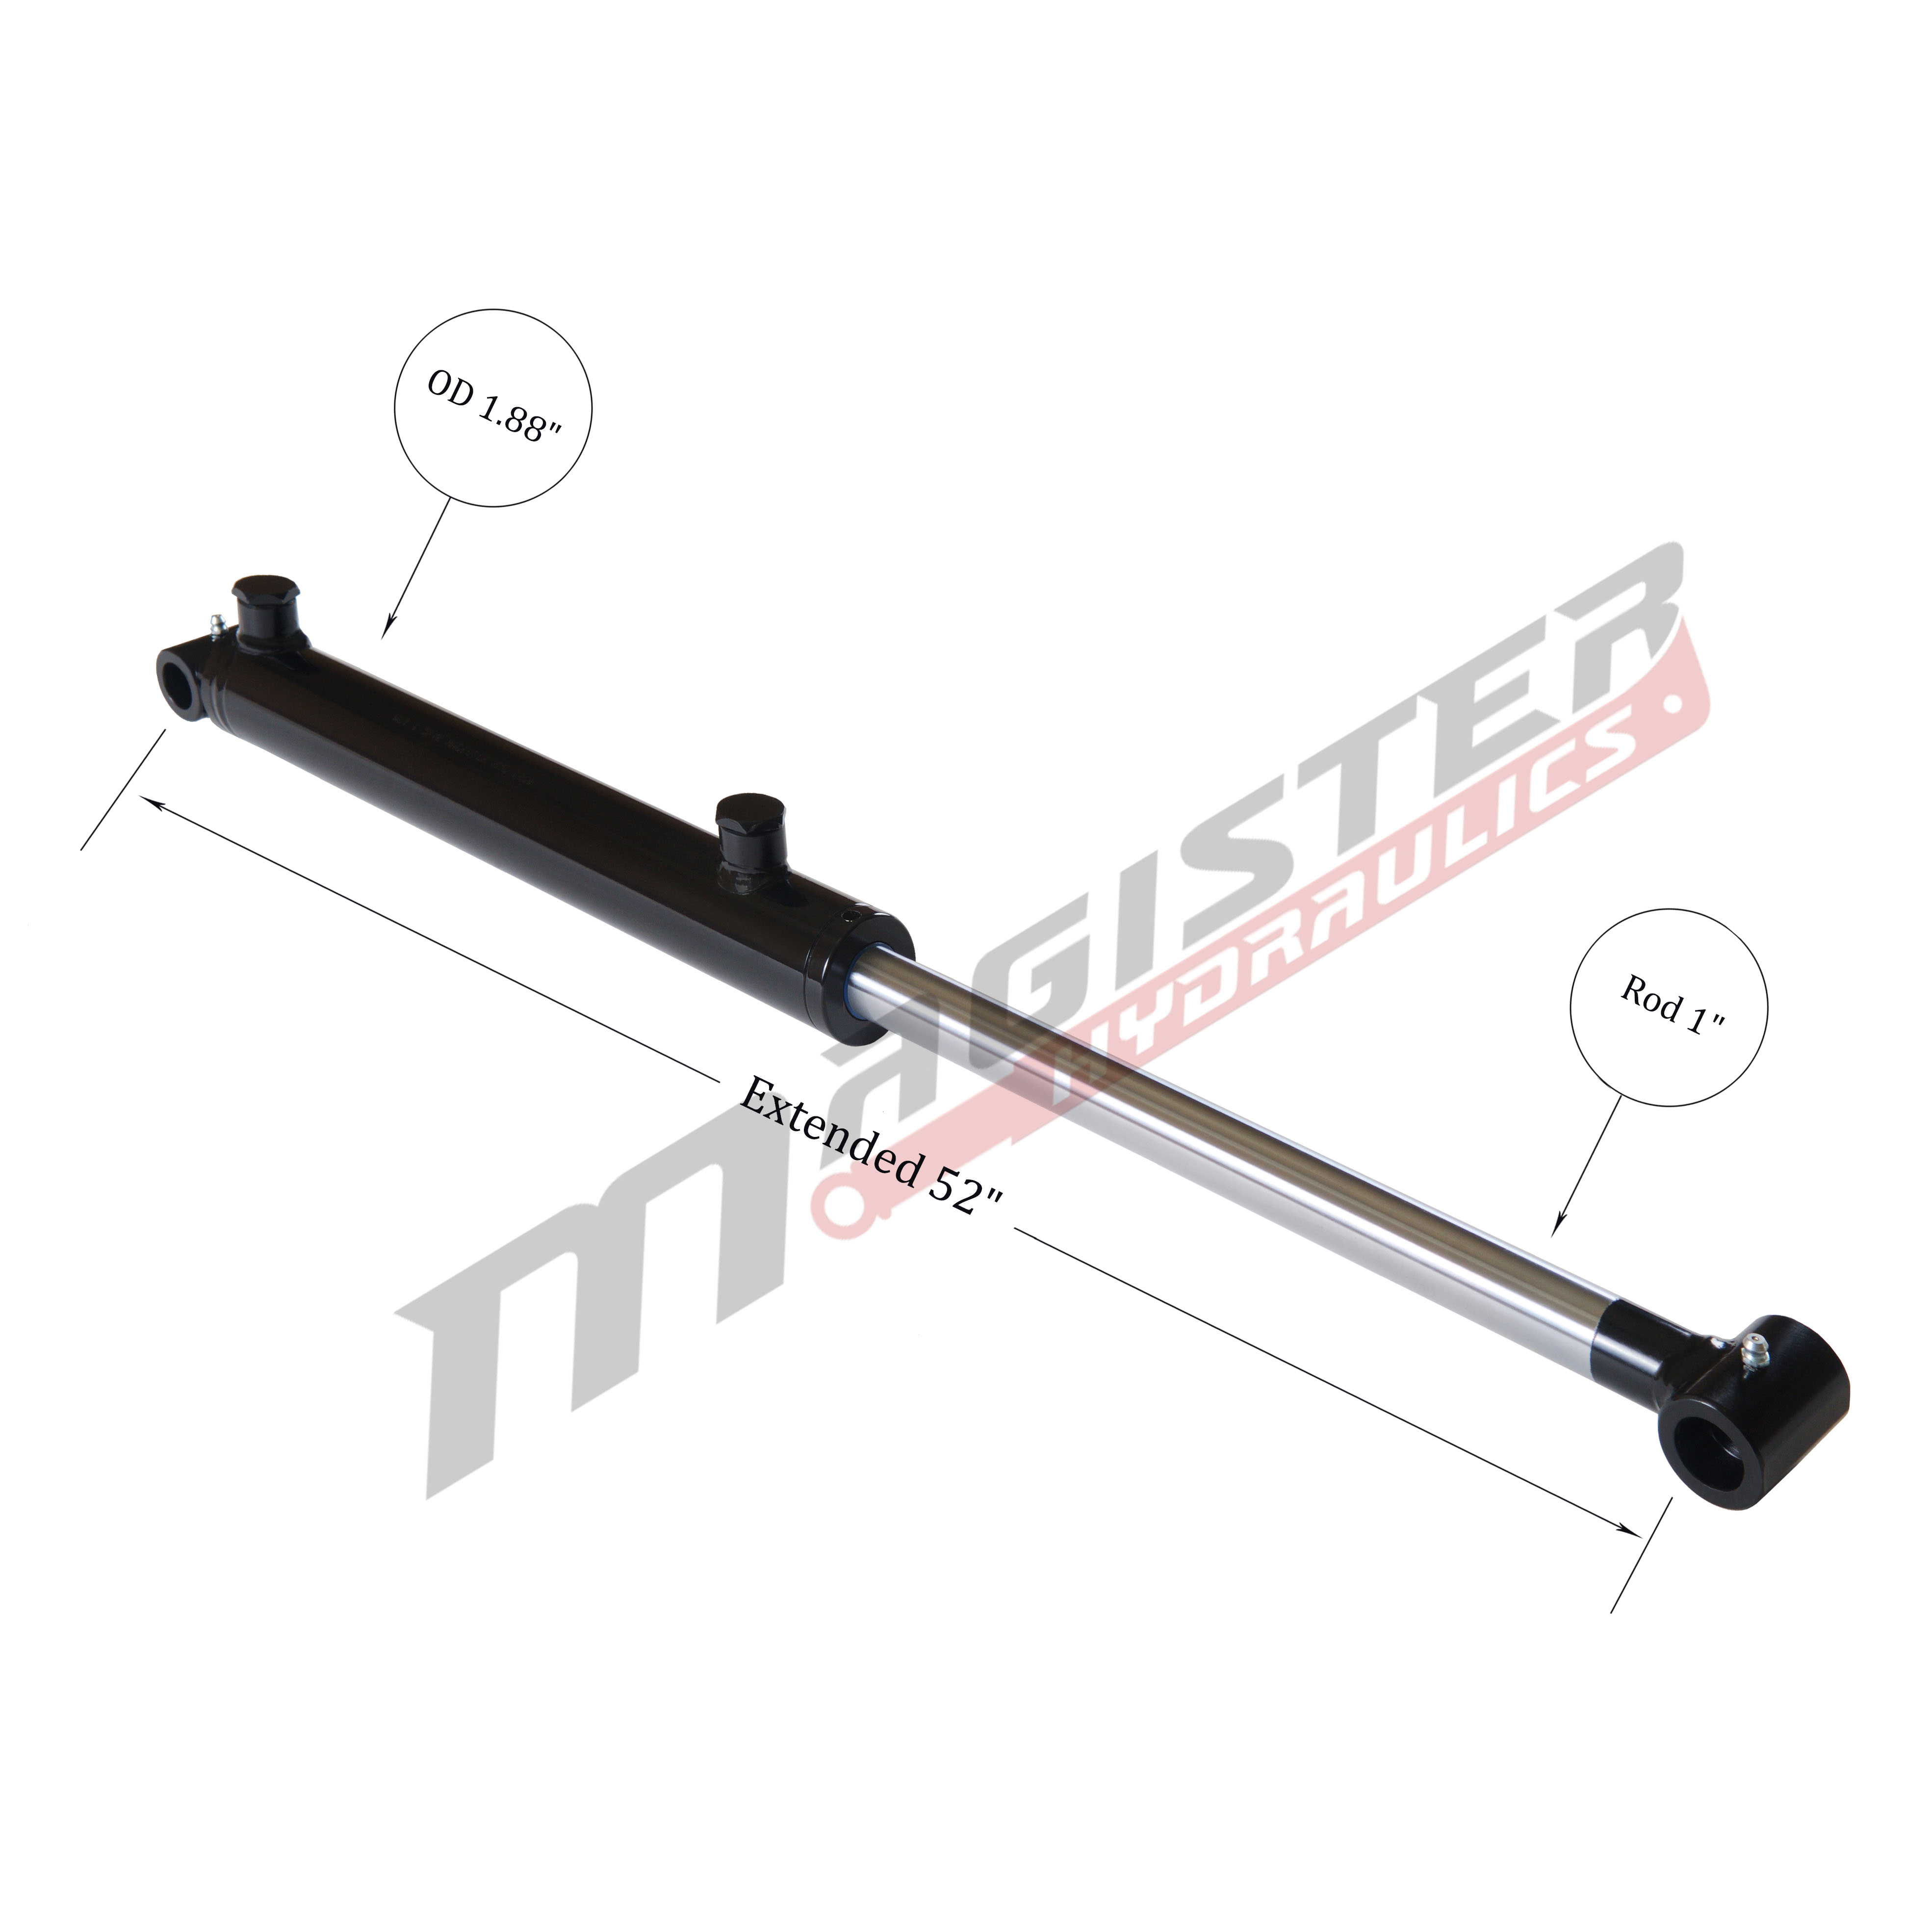 1.5 bore x 22 stroke hydraulic cylinder, welded cross tube double acting cylinder | Magister Hydraulics